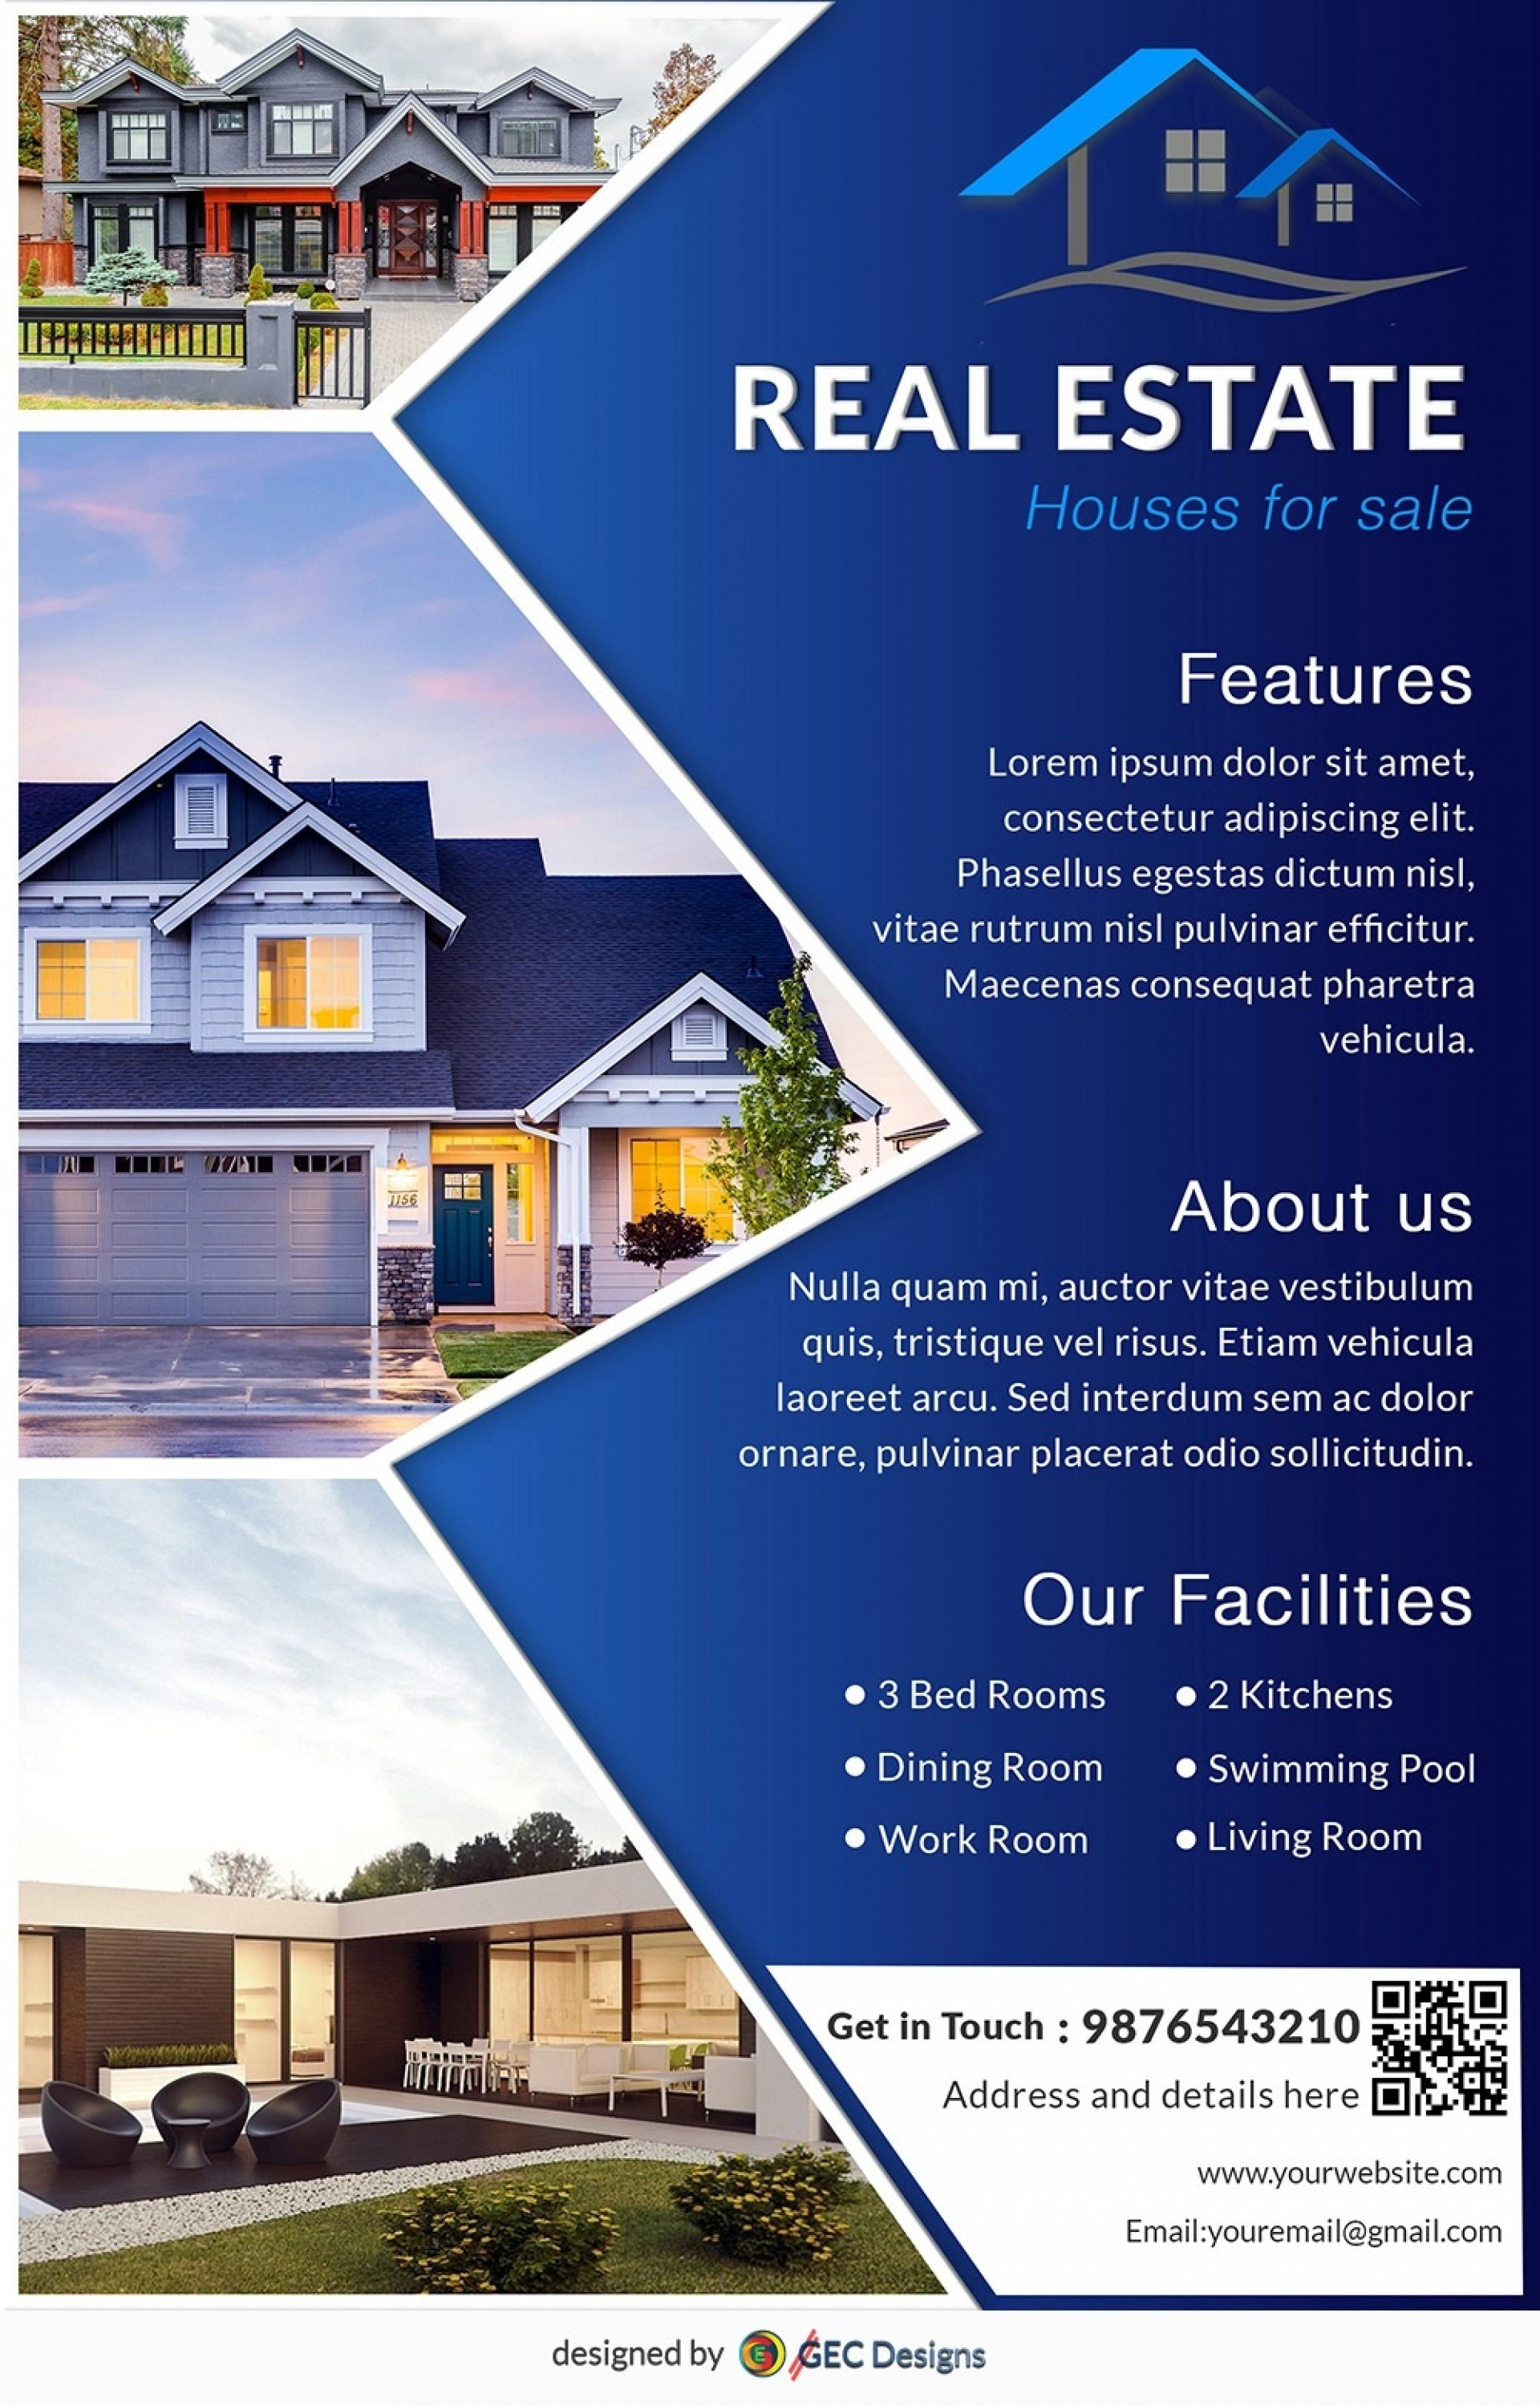 004 Awesome Real Estate Marketing Flyer Template Free High Resolution 1920